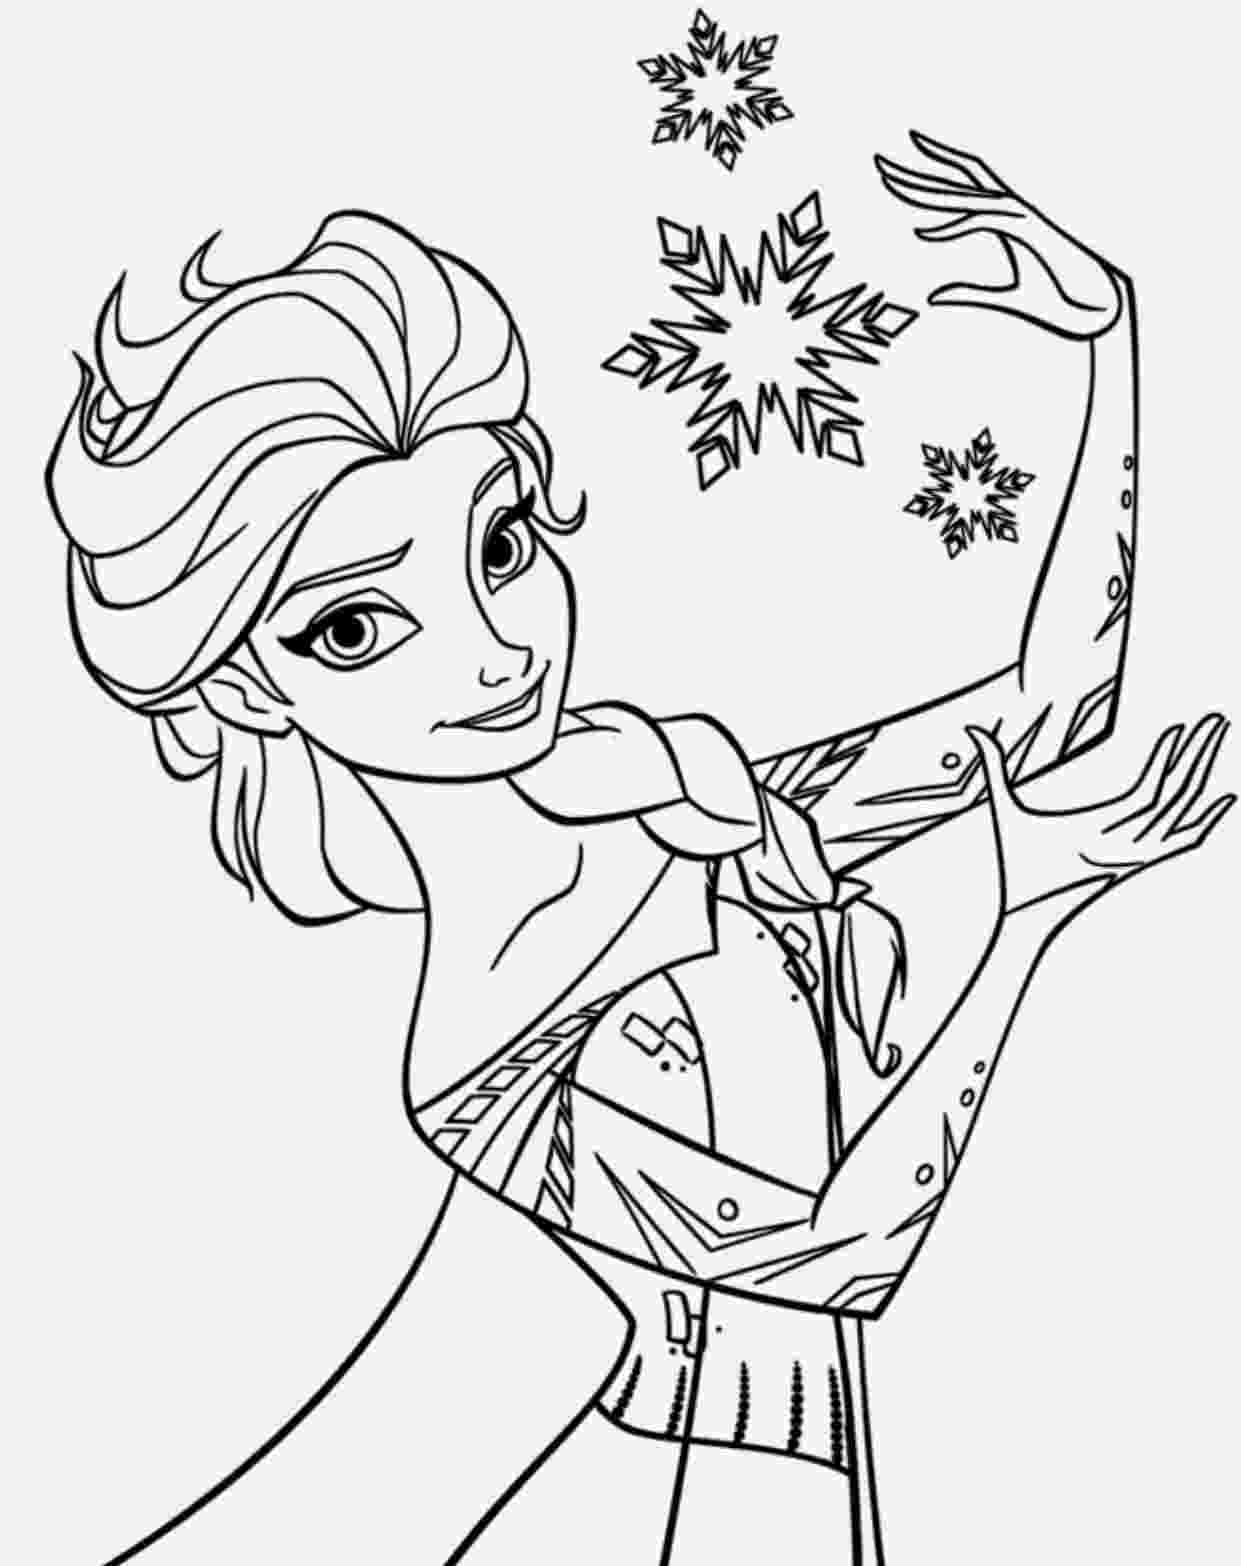 coloring pages of elsa from frozen frozen elsa anna coloring pages pages elsa of from frozen coloring